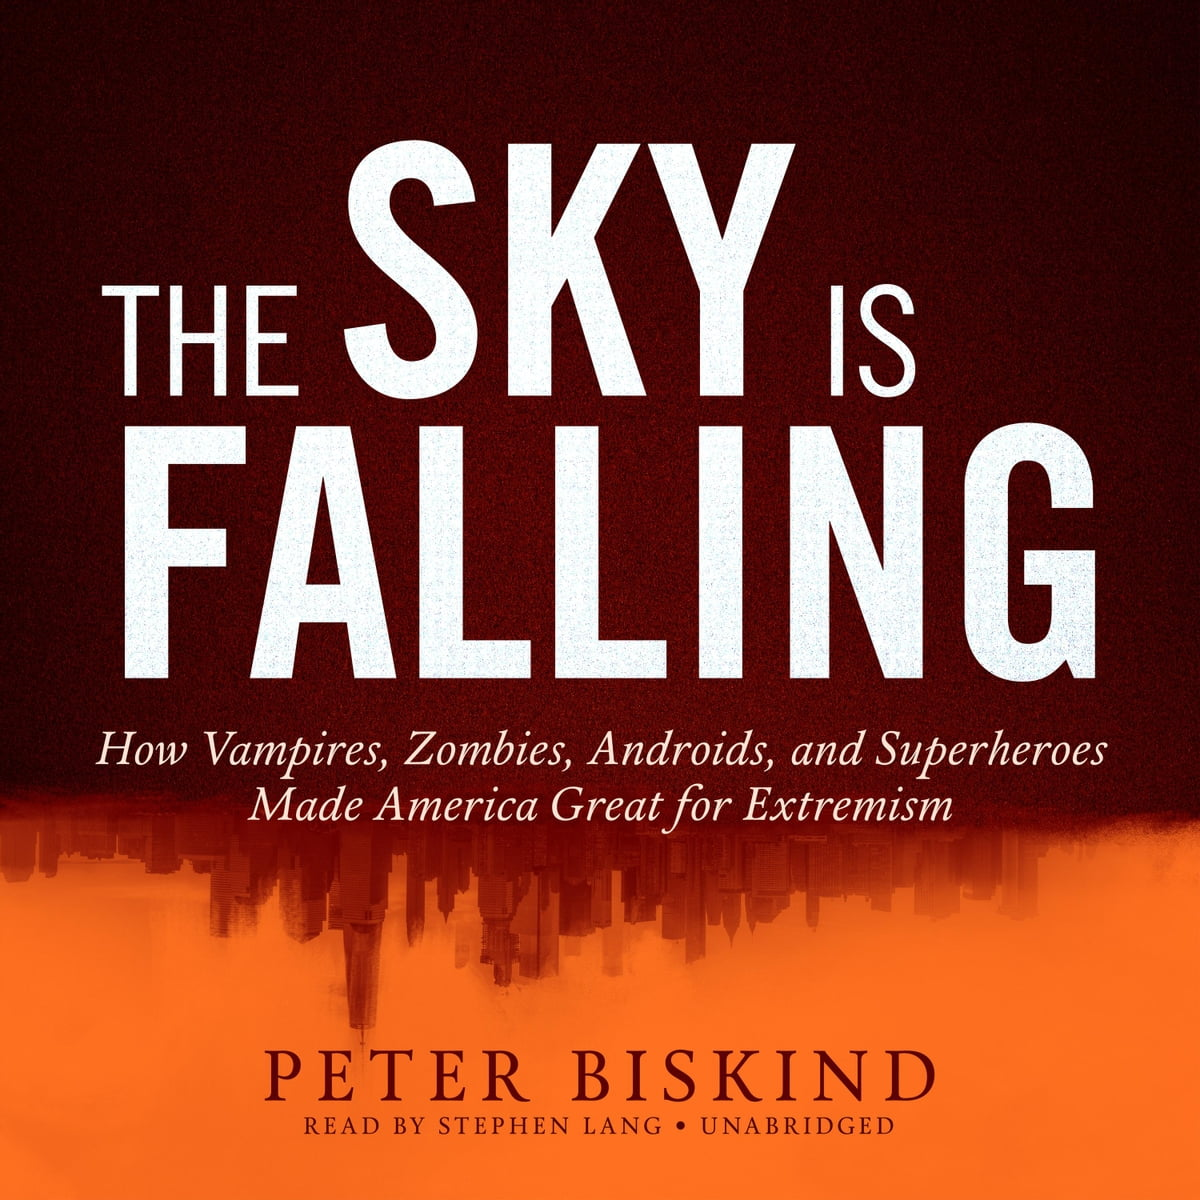 The Sky Is Falling Book